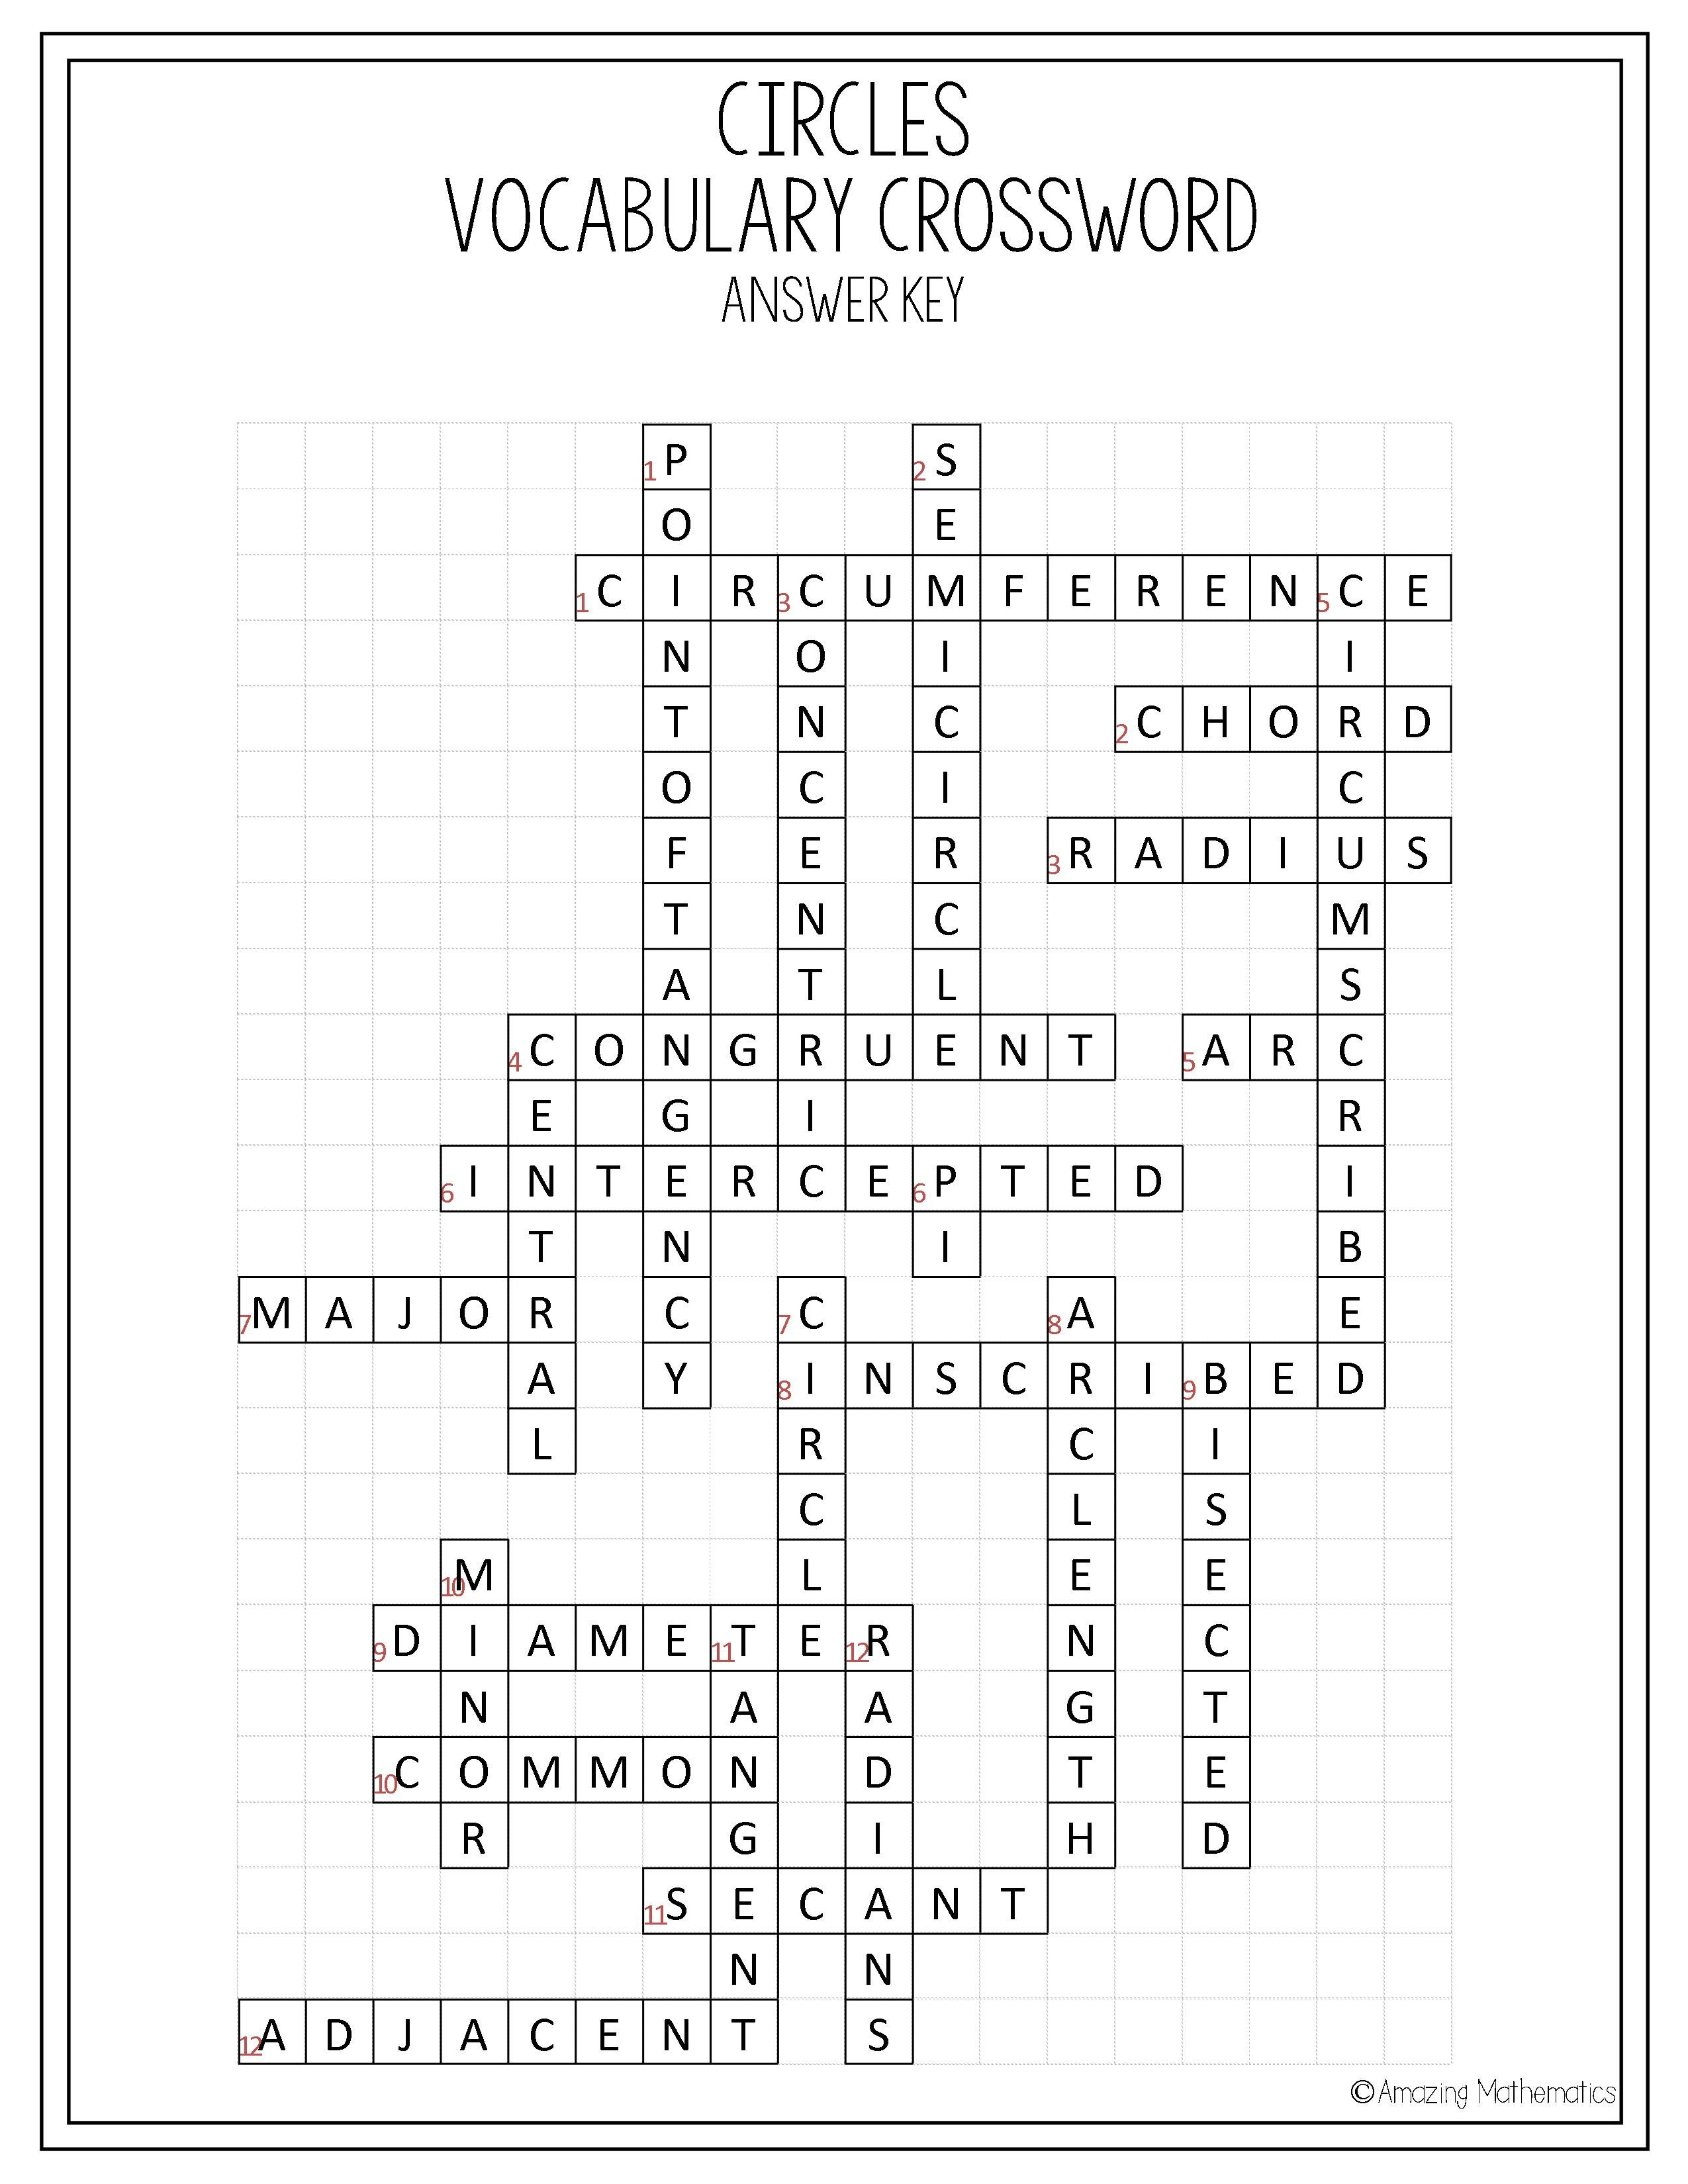 Circles Vocabulary Crossword | My Tpt Items | Geometry Worksheets - Printable Math Vocabulary Crossword Puzzles